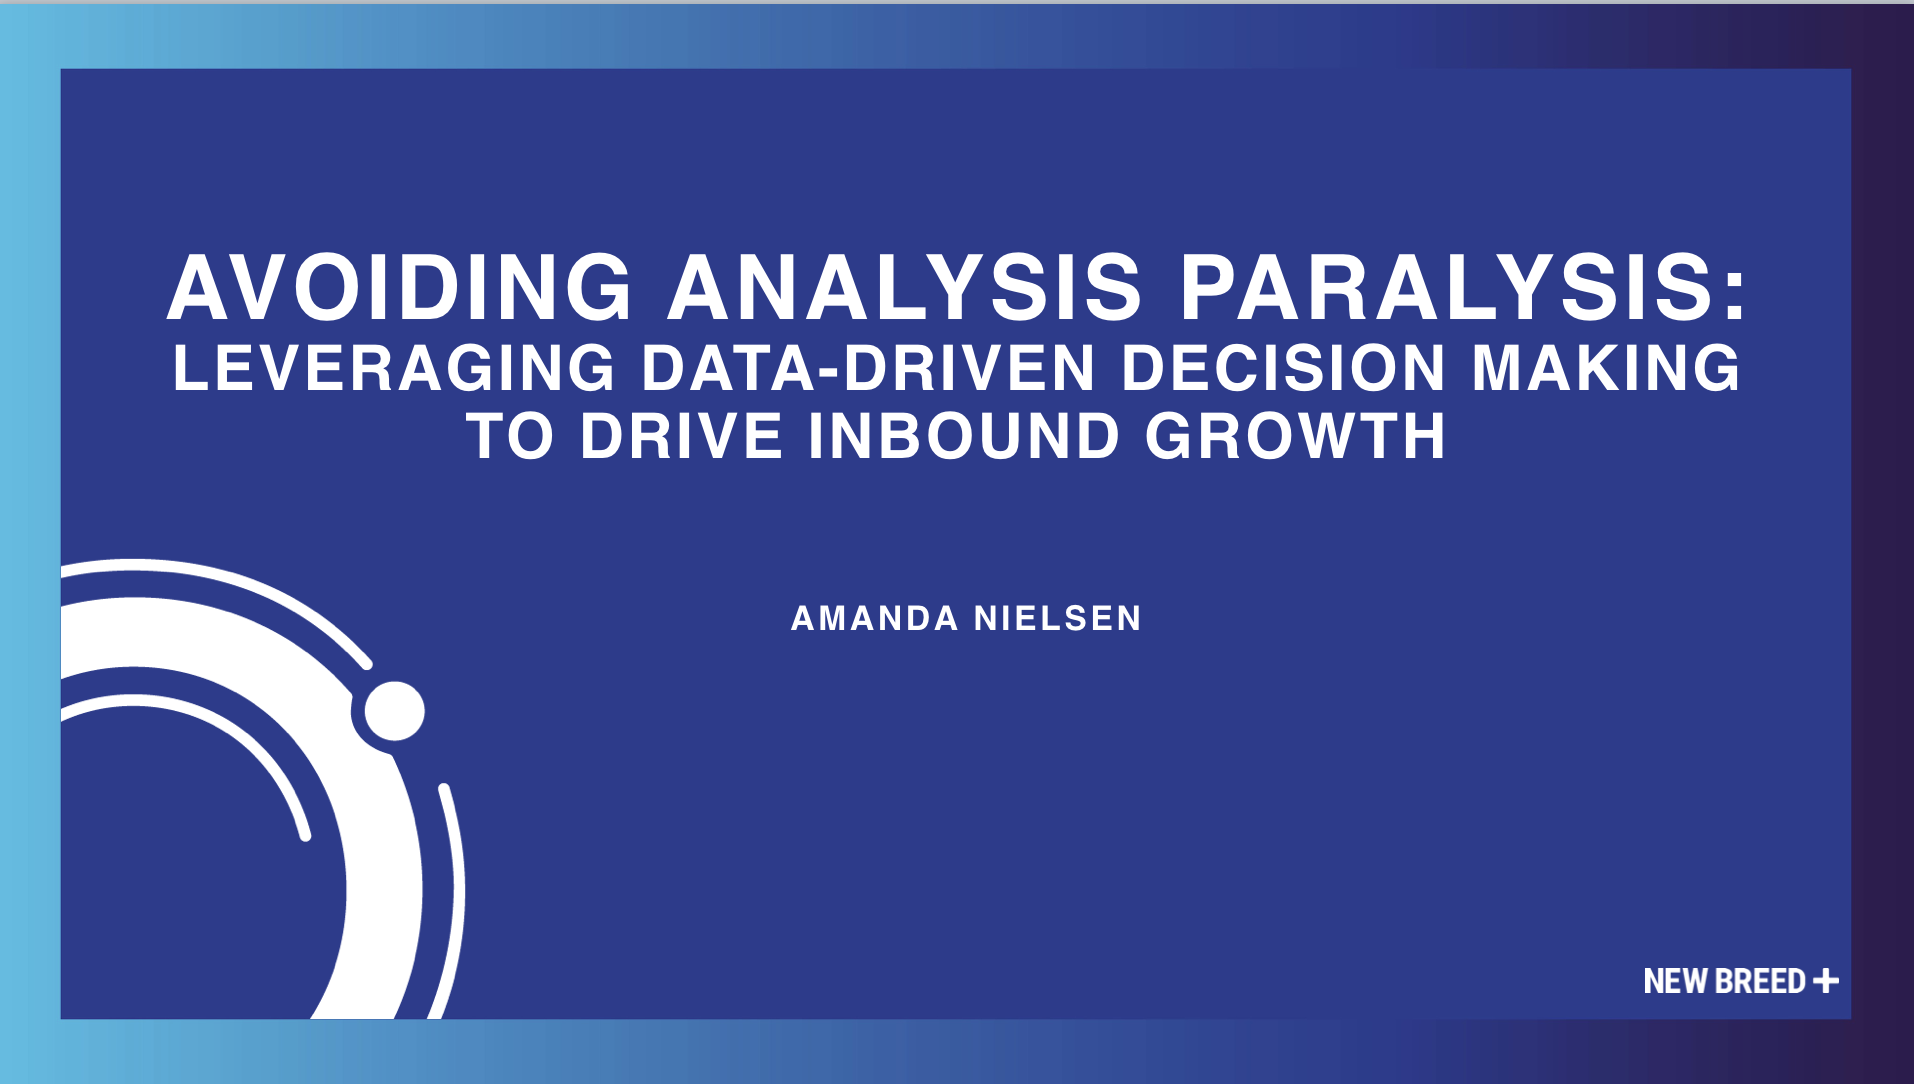 avoiding analysis paralysis how to leverage data-driven decision making to drive ibound growth